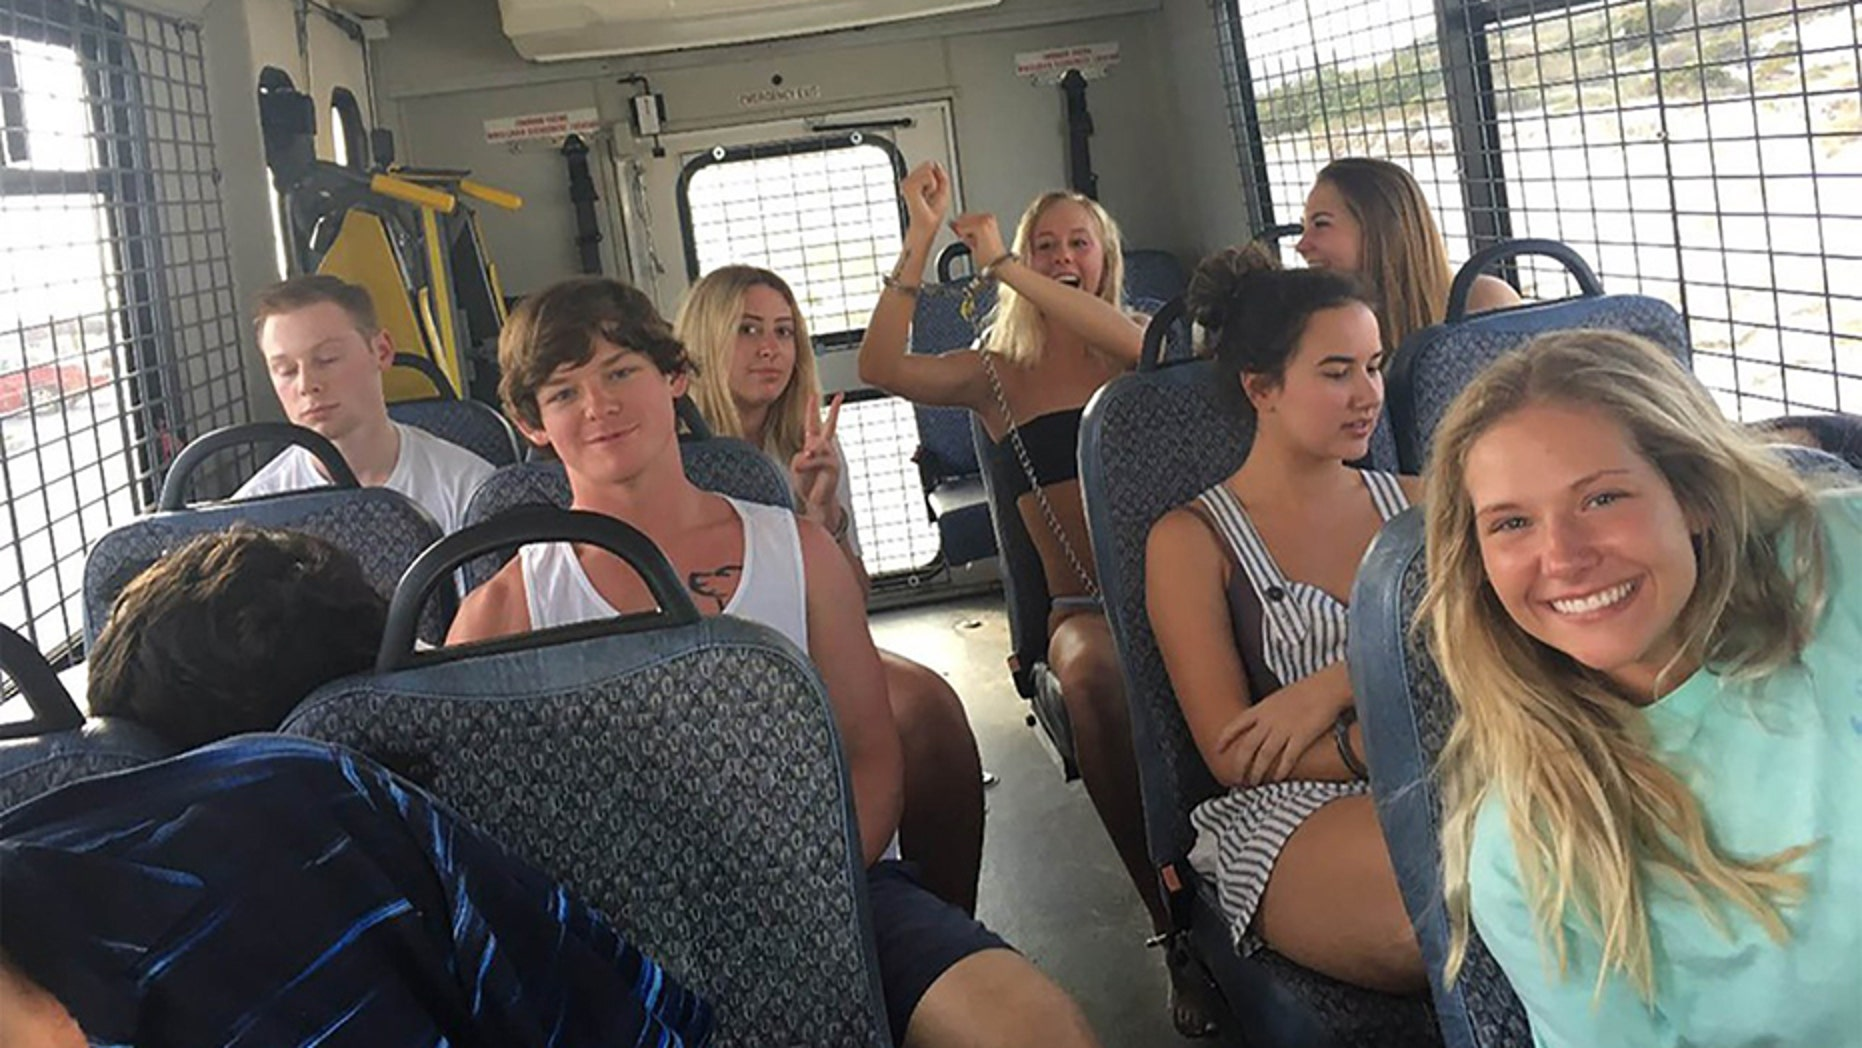 Hot Teens On Bus